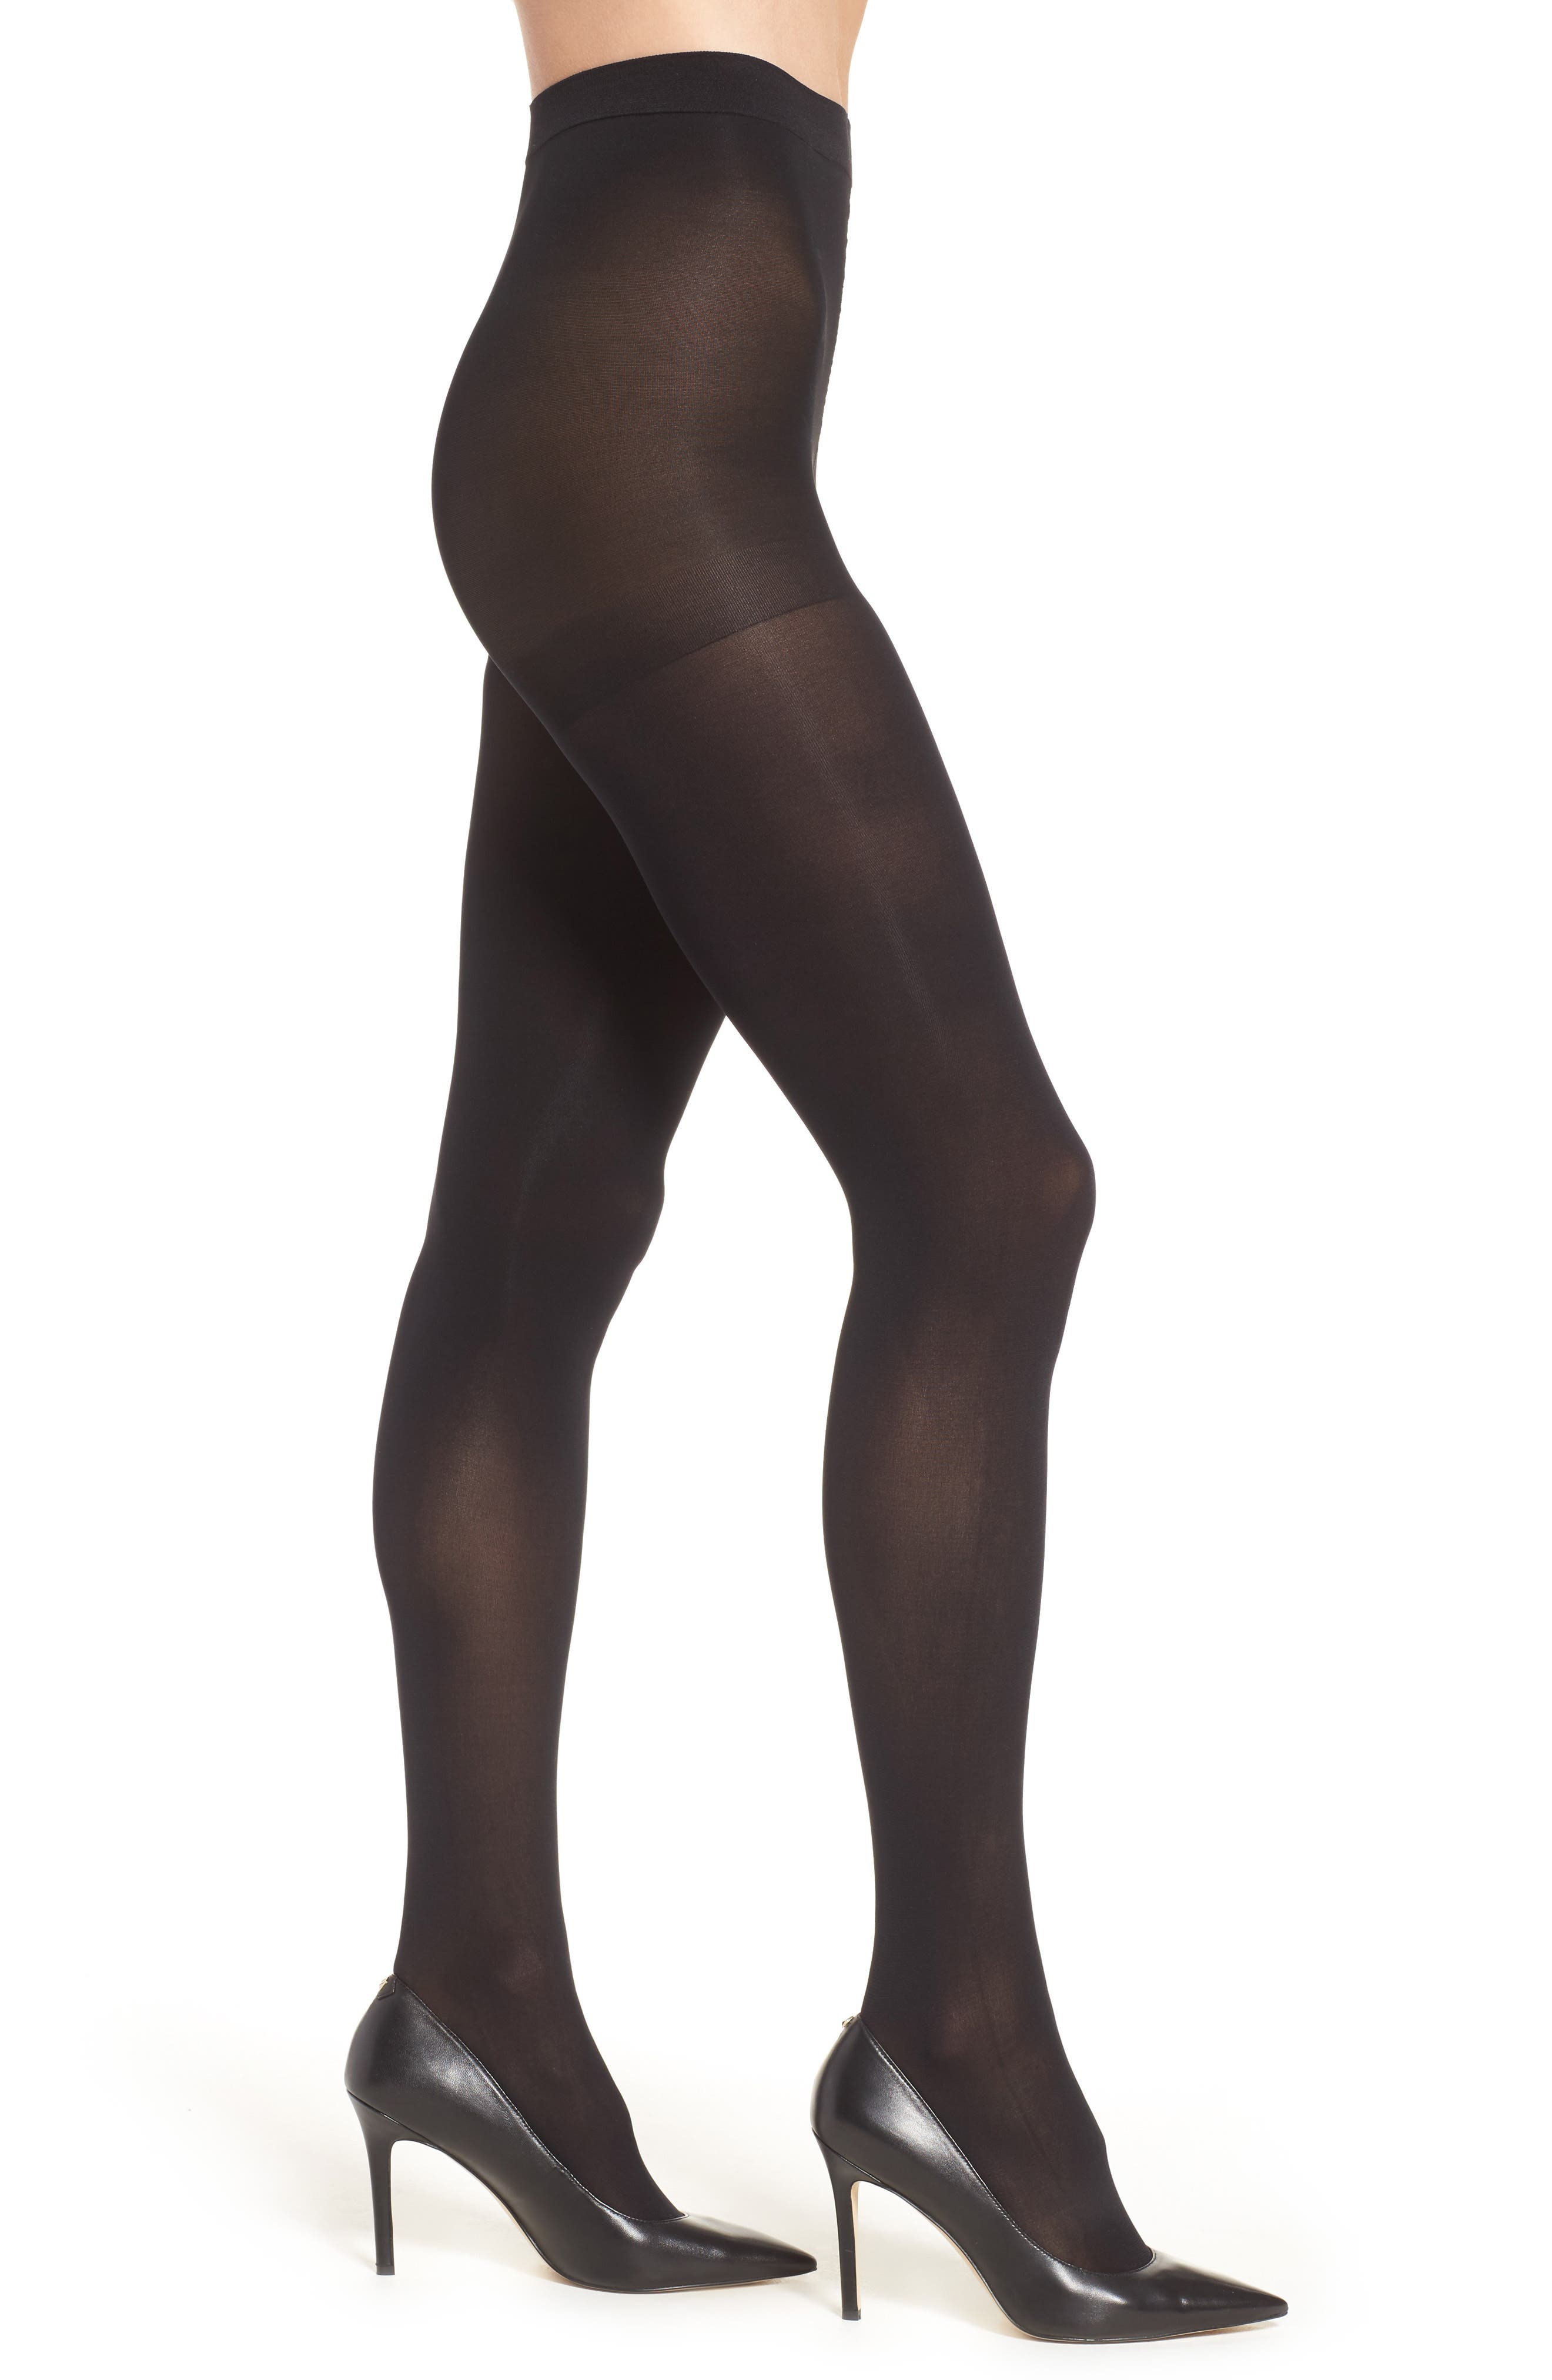 Main Image - Nordstrom Opaque Control Top Tights (2 for $24)